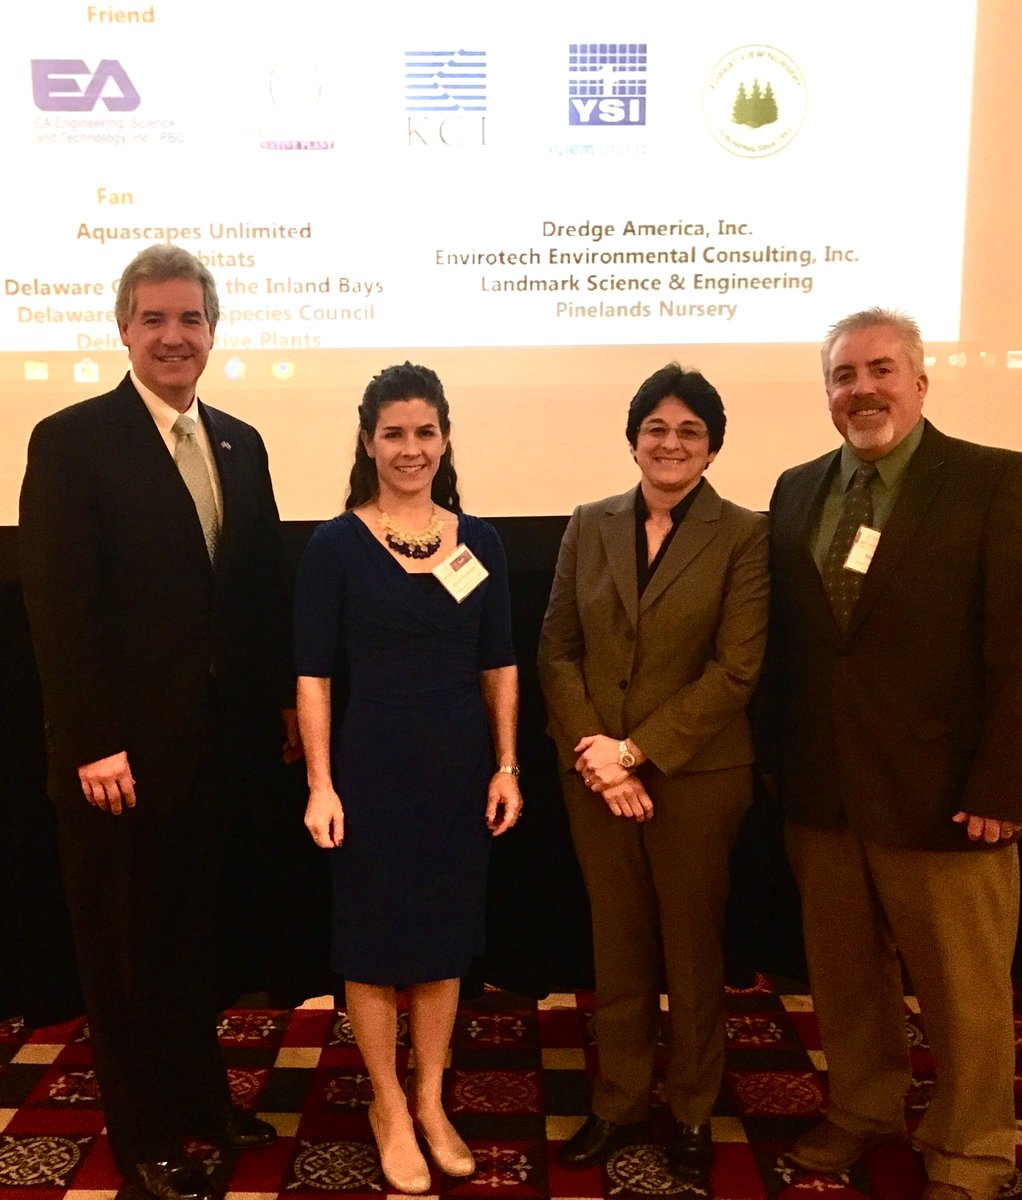 Shawn M. Garvin, Alison Rogerson, MC Of The Opening Ceremonies, Keynote  Speaker Dr. Lenore Tedesco, And Mark Biddle, Conference Organizer At The  8th Annual ...